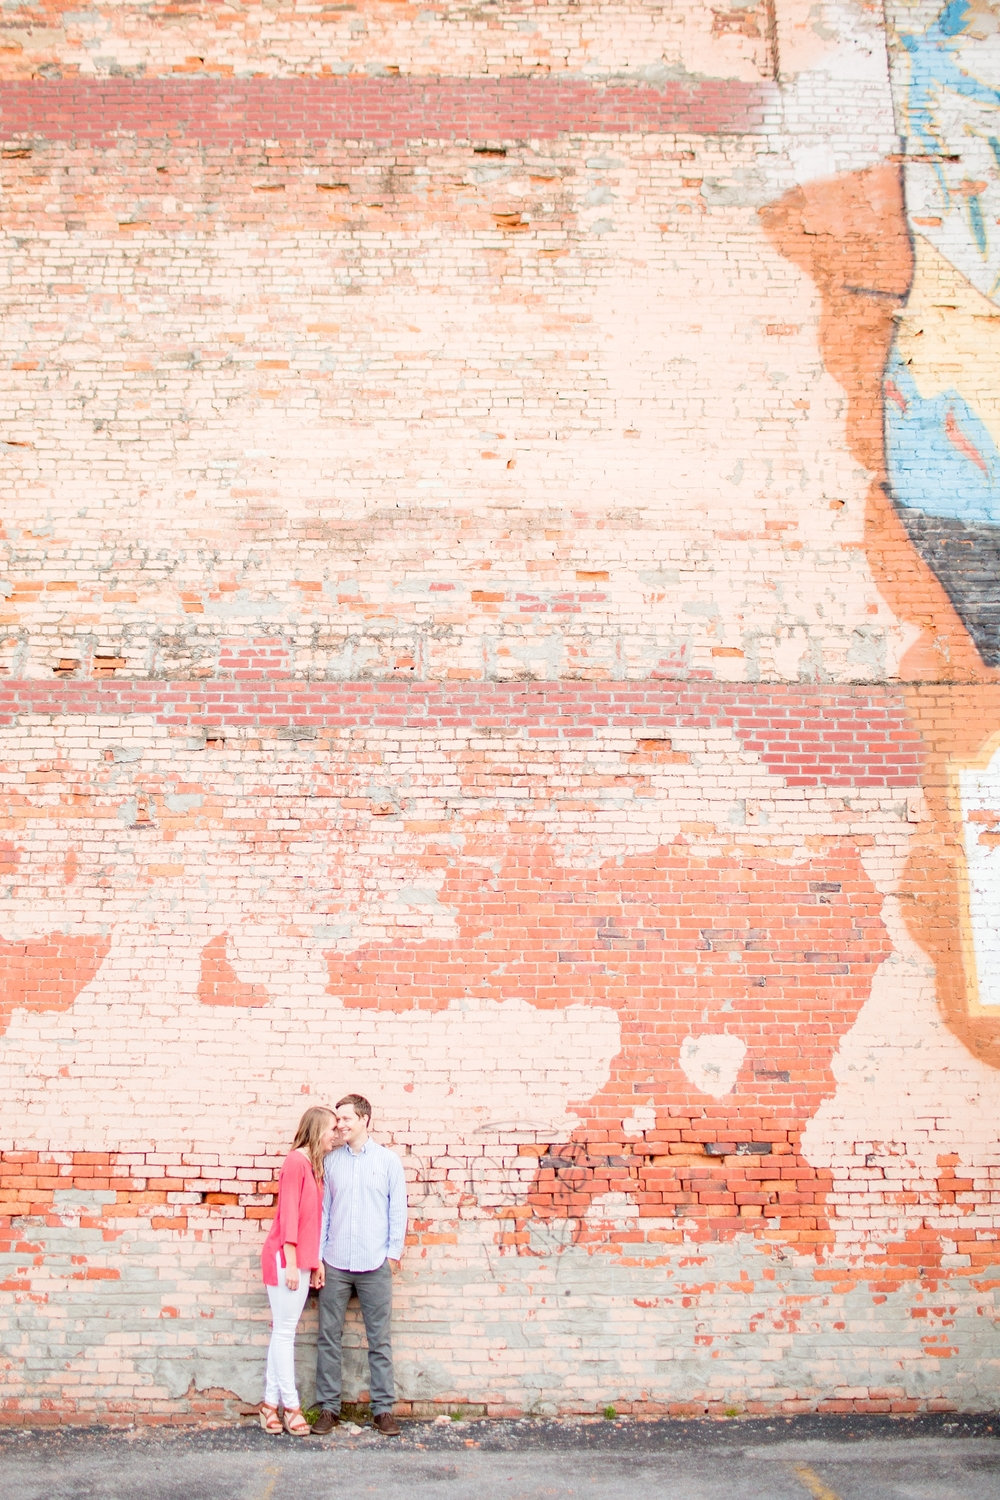 Erin & Jackson Engagement-462_anna grace photography nashville tennessee engagement photographer destination photographer photo.jpg